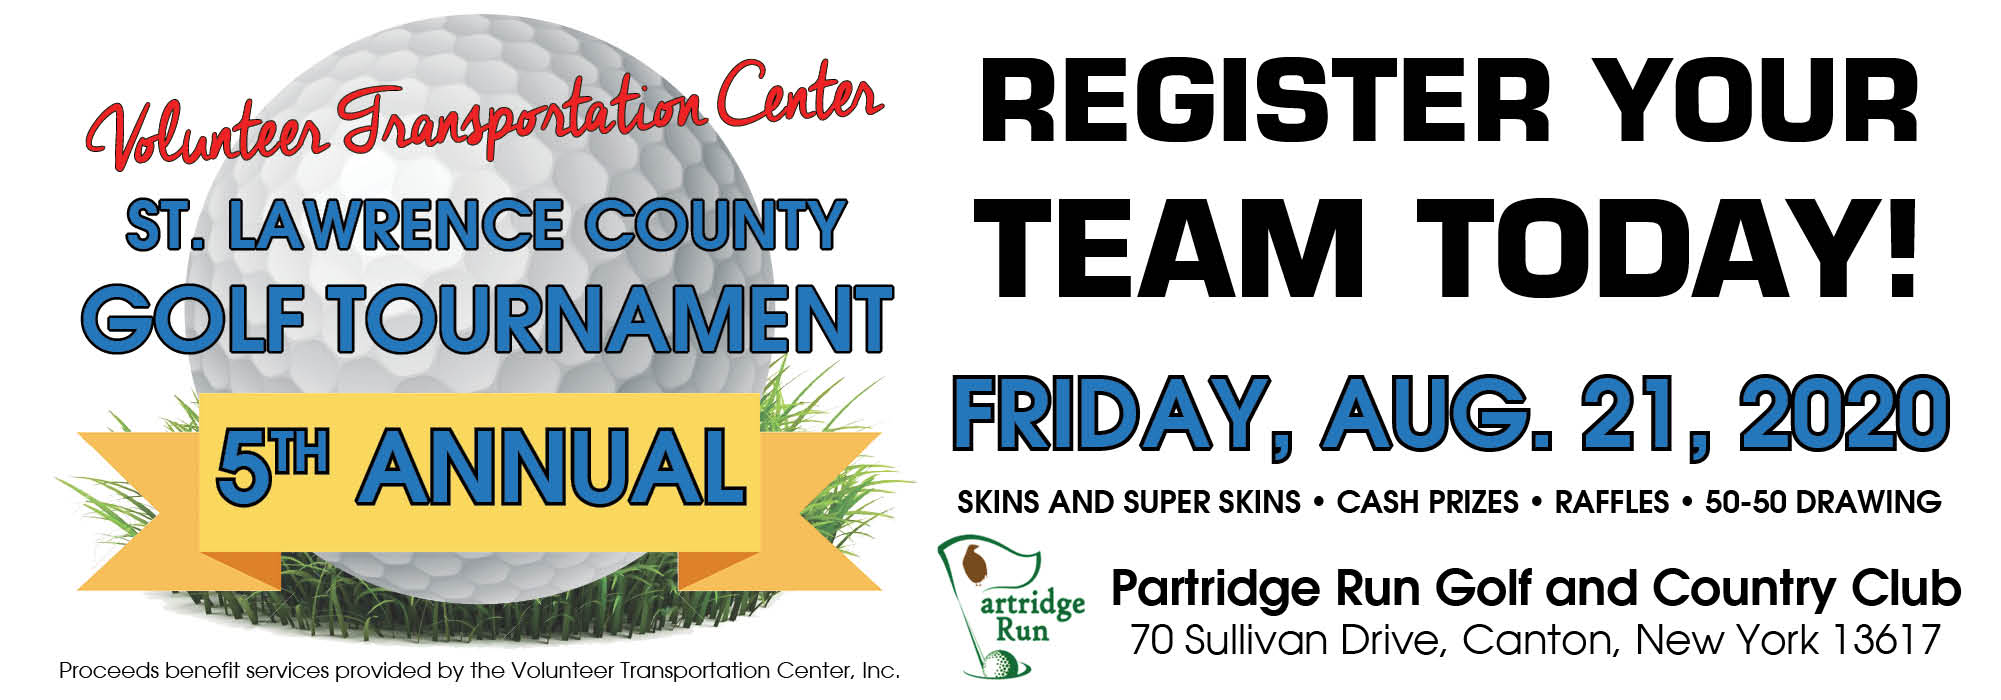 5th Annual Volunteer Transportation Center St. Lawrence County Golf Tournament